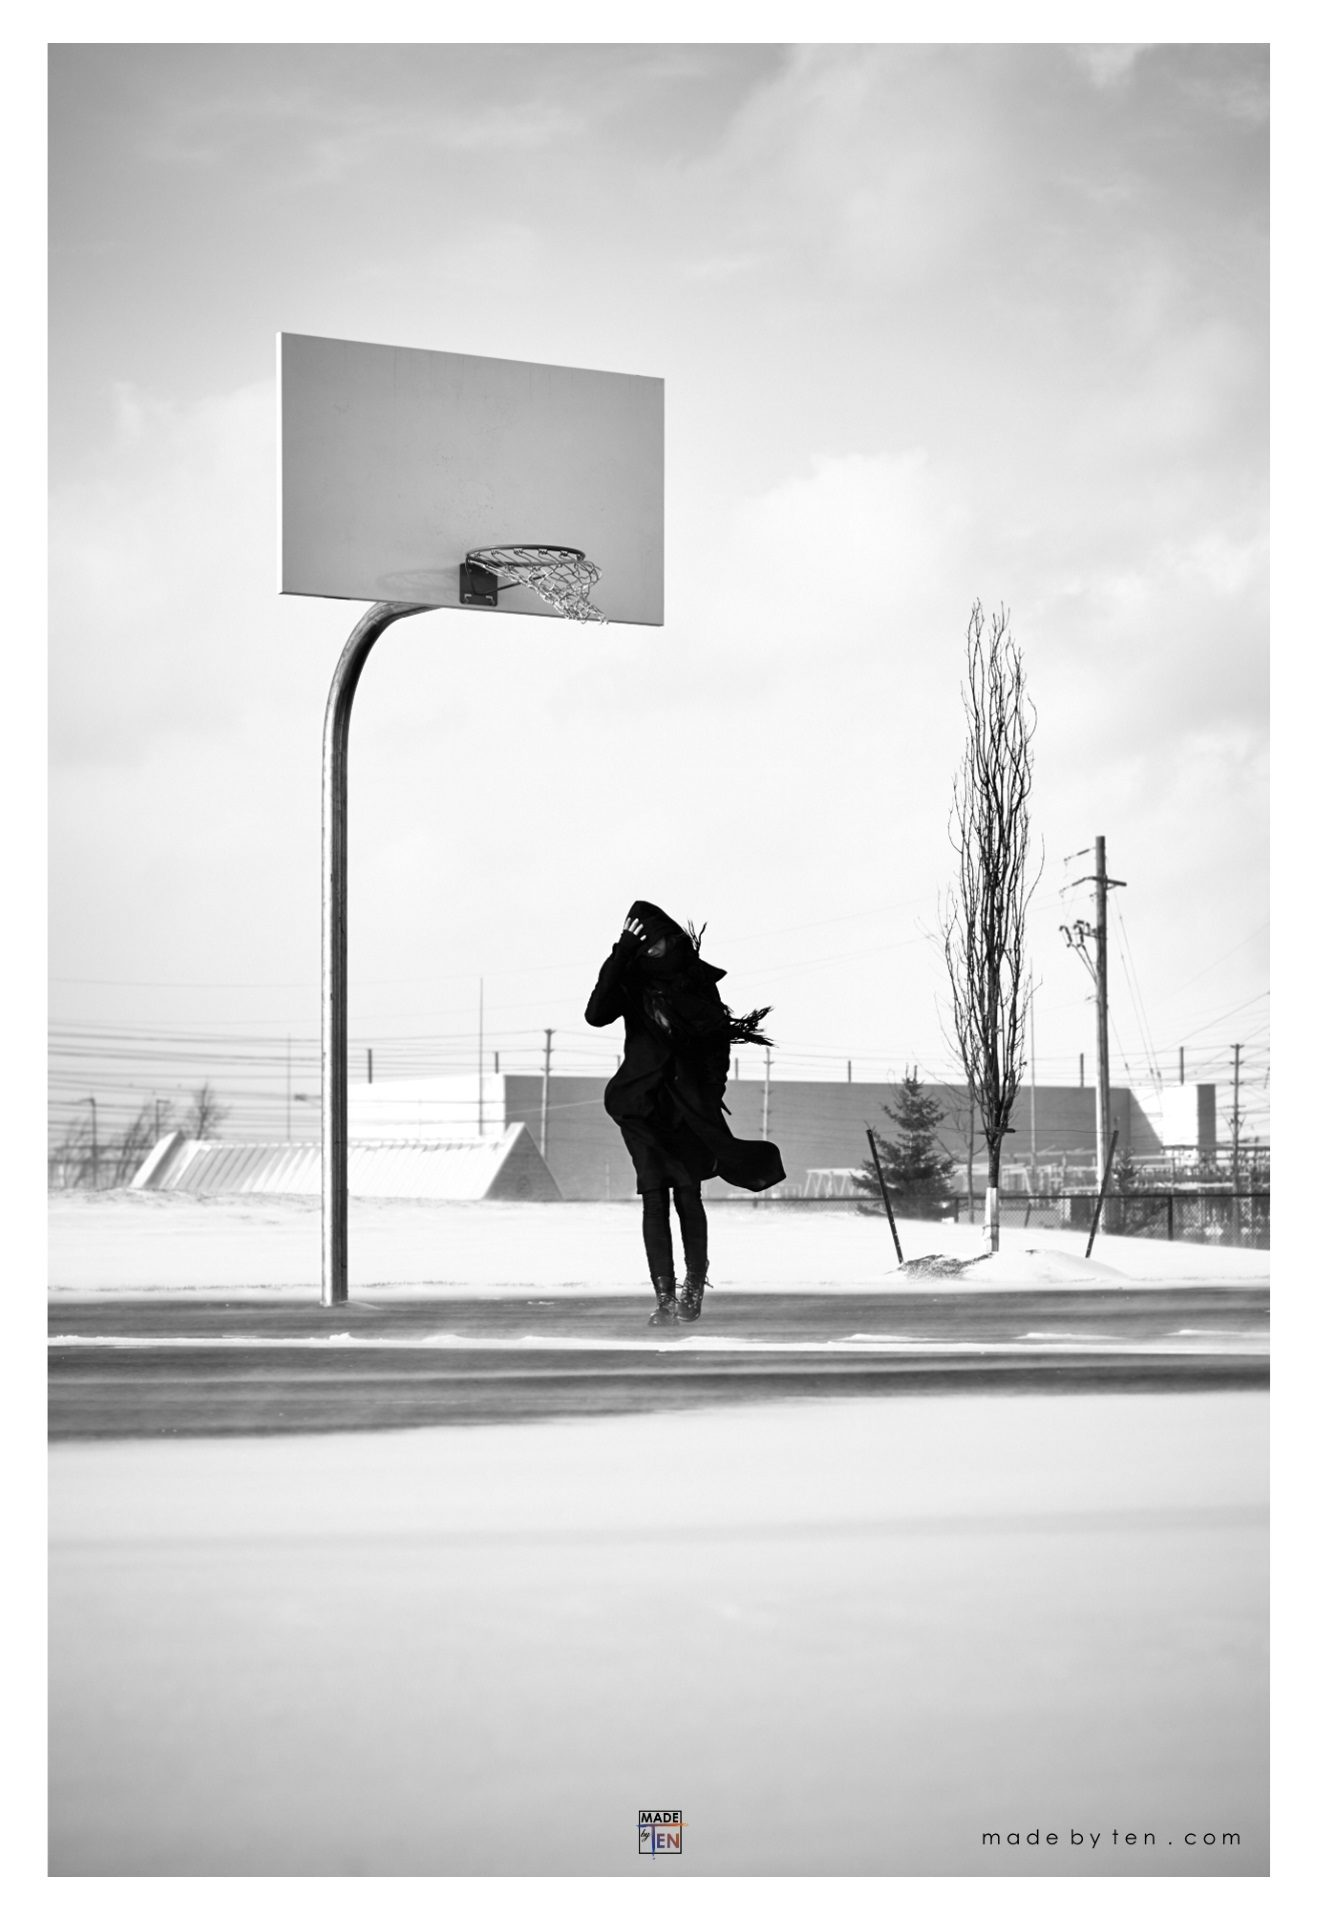 Made-by-Ten-Modern-Creative-Fine-Art-Portrait-Photography-GTA-Women-Toronto-Winter-Cold-Black-and-White-2